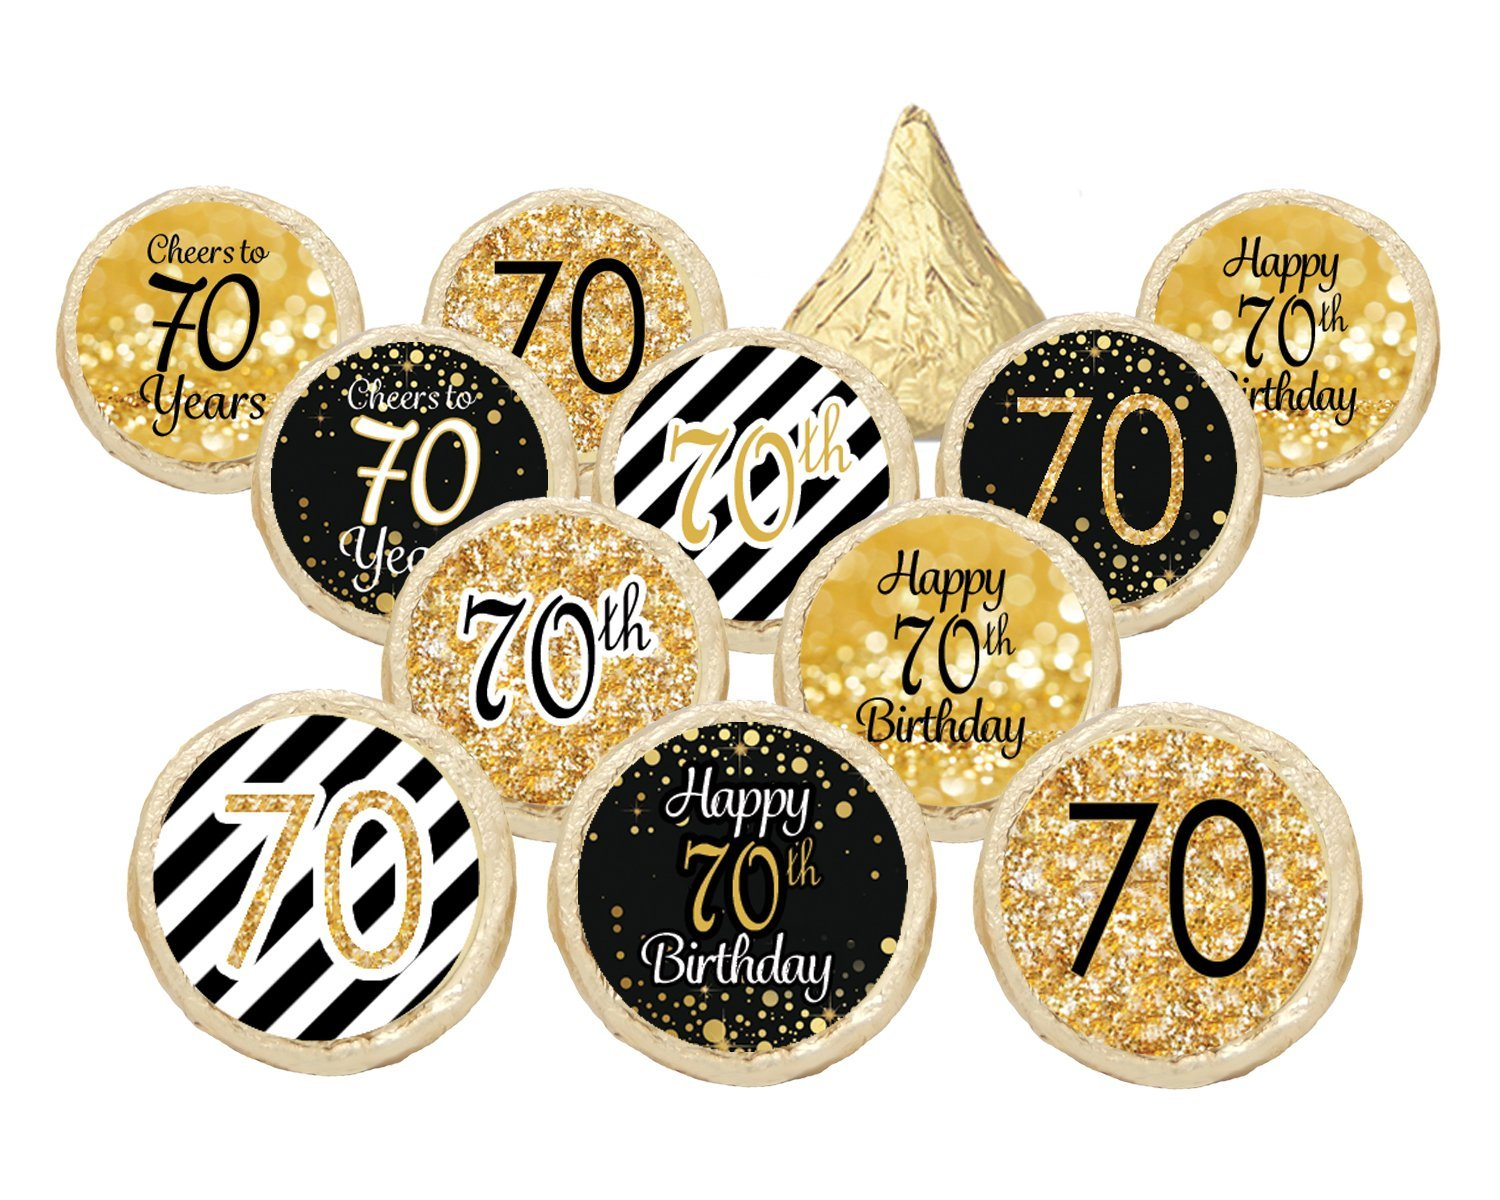 216 Stickers DISTINCTIVS Black and Gold Happy Birthday Party Favor Labels